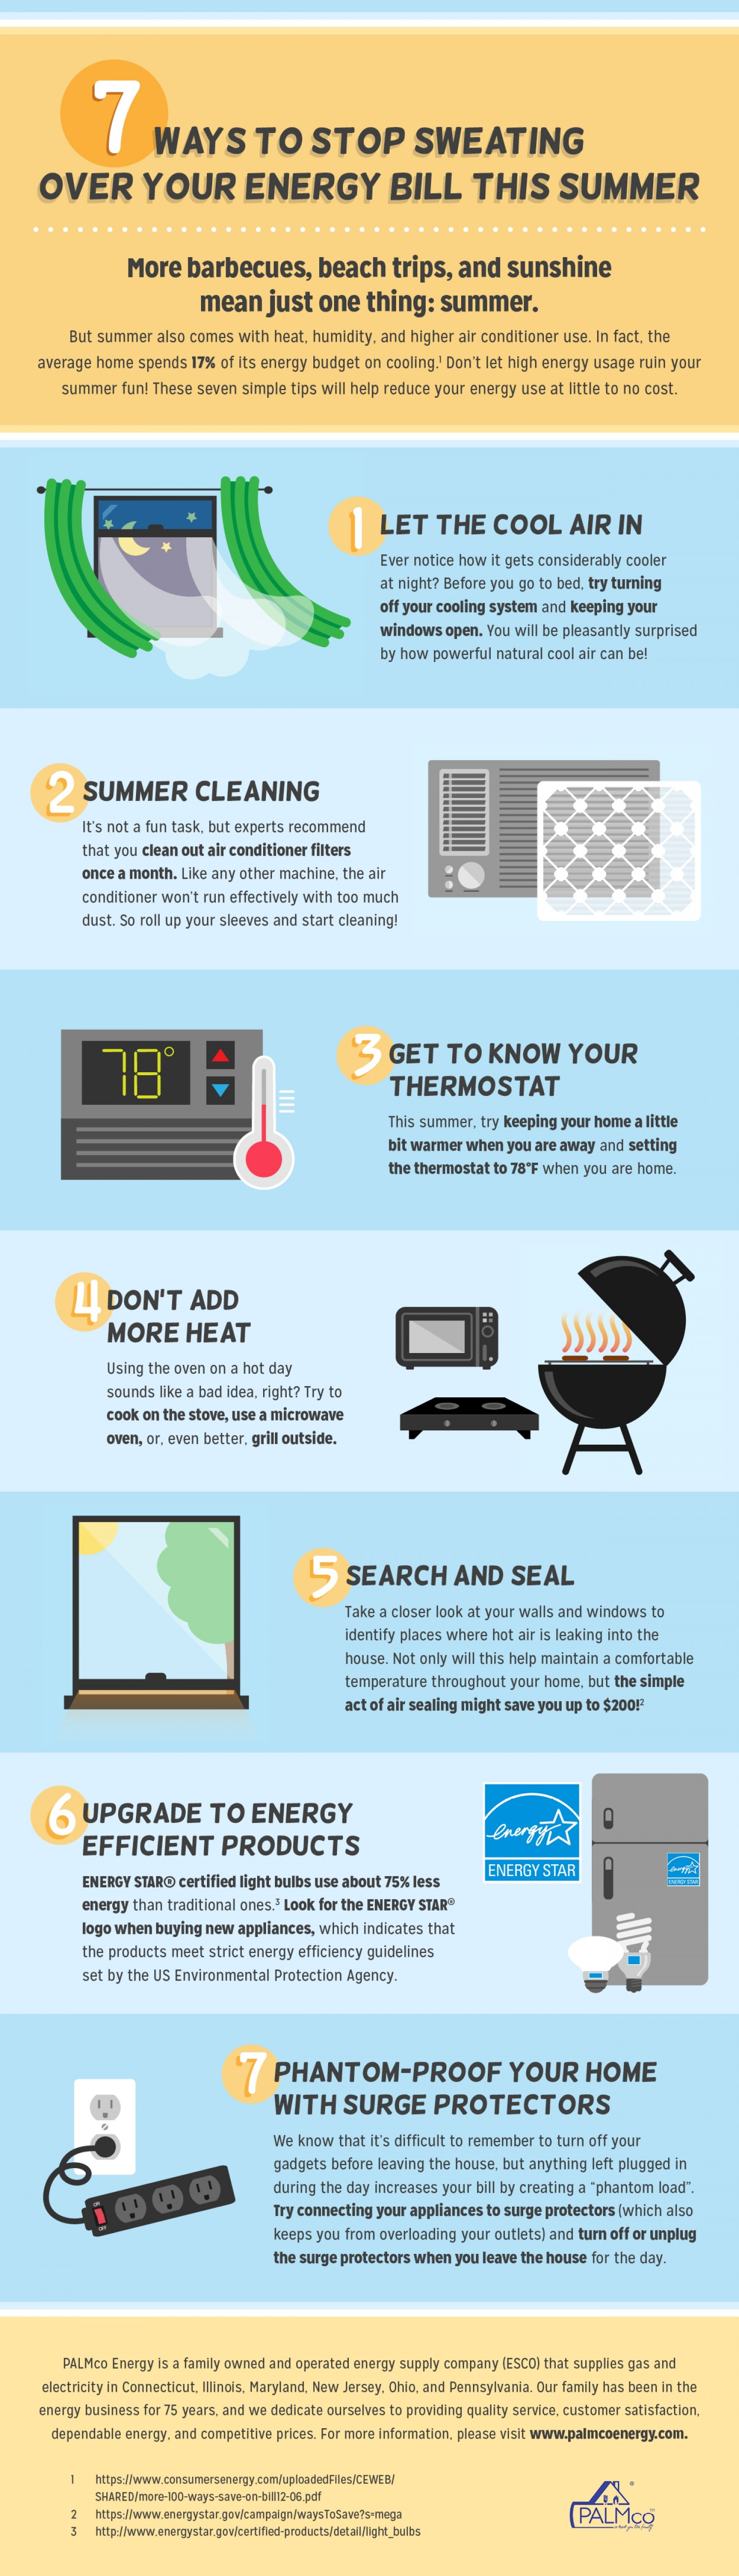 7 Ways to Stop Sweating Over Your Energy Bill This Summer Infographic